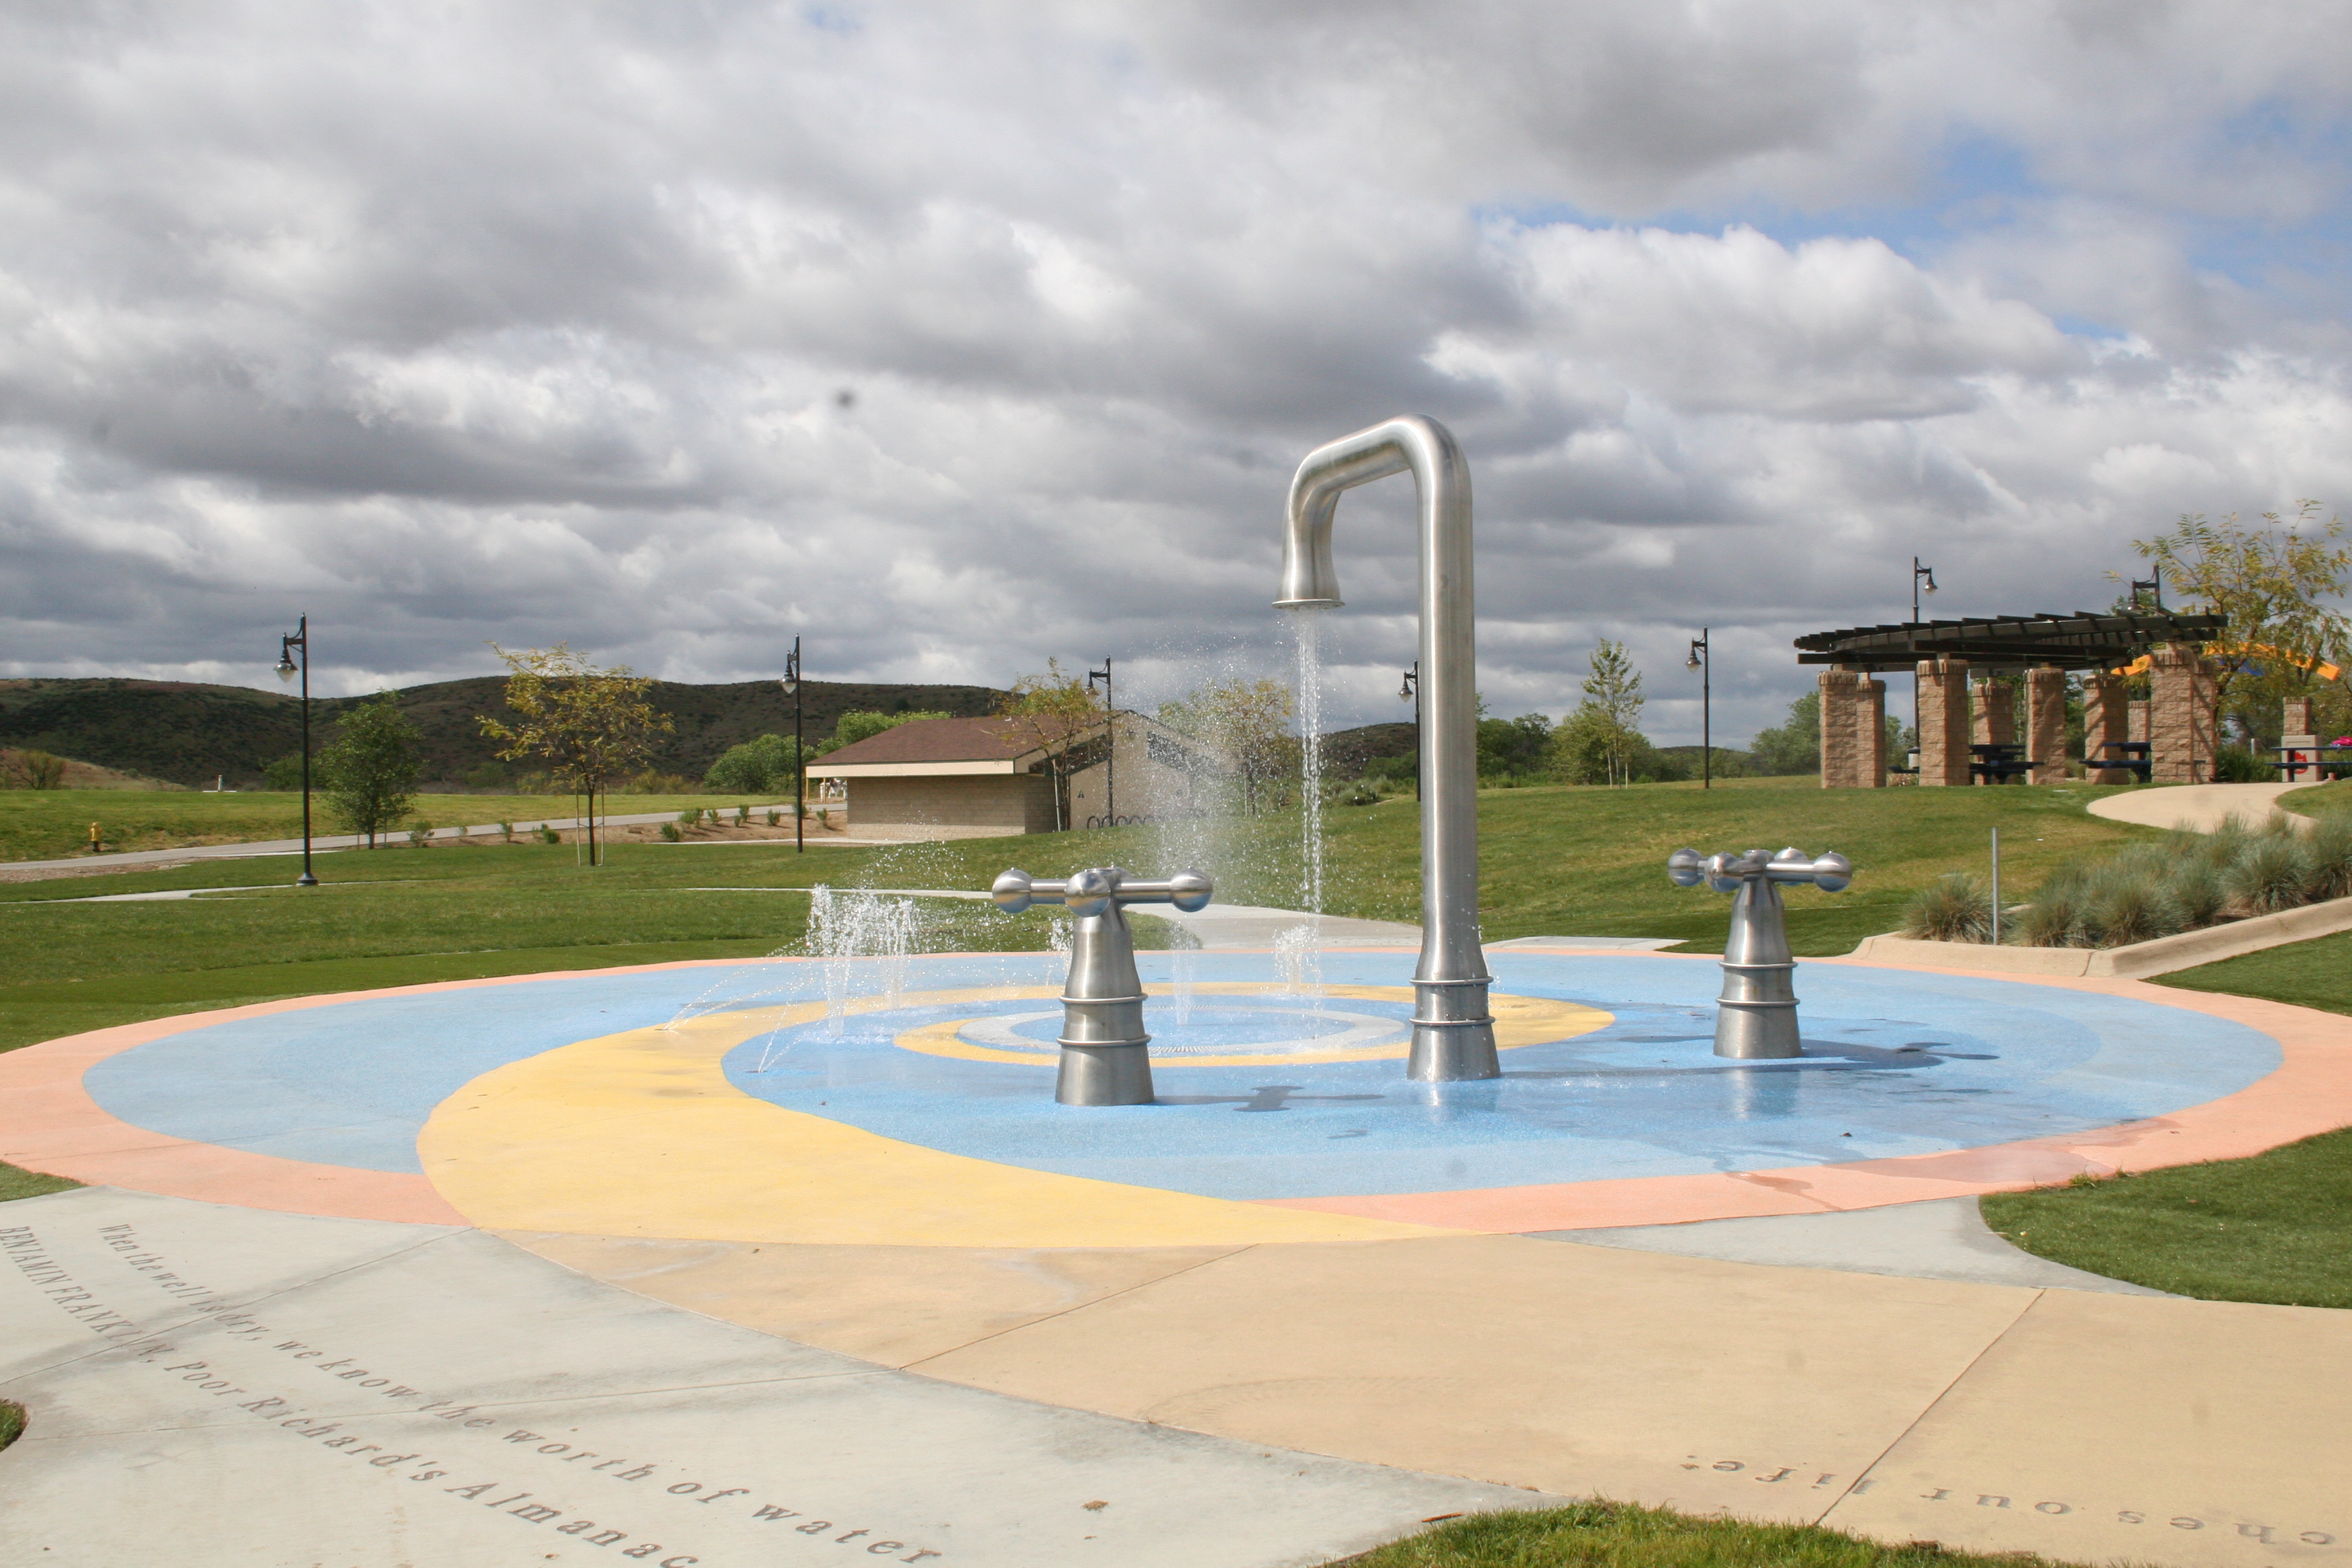 Splash pad at Lake Skinner